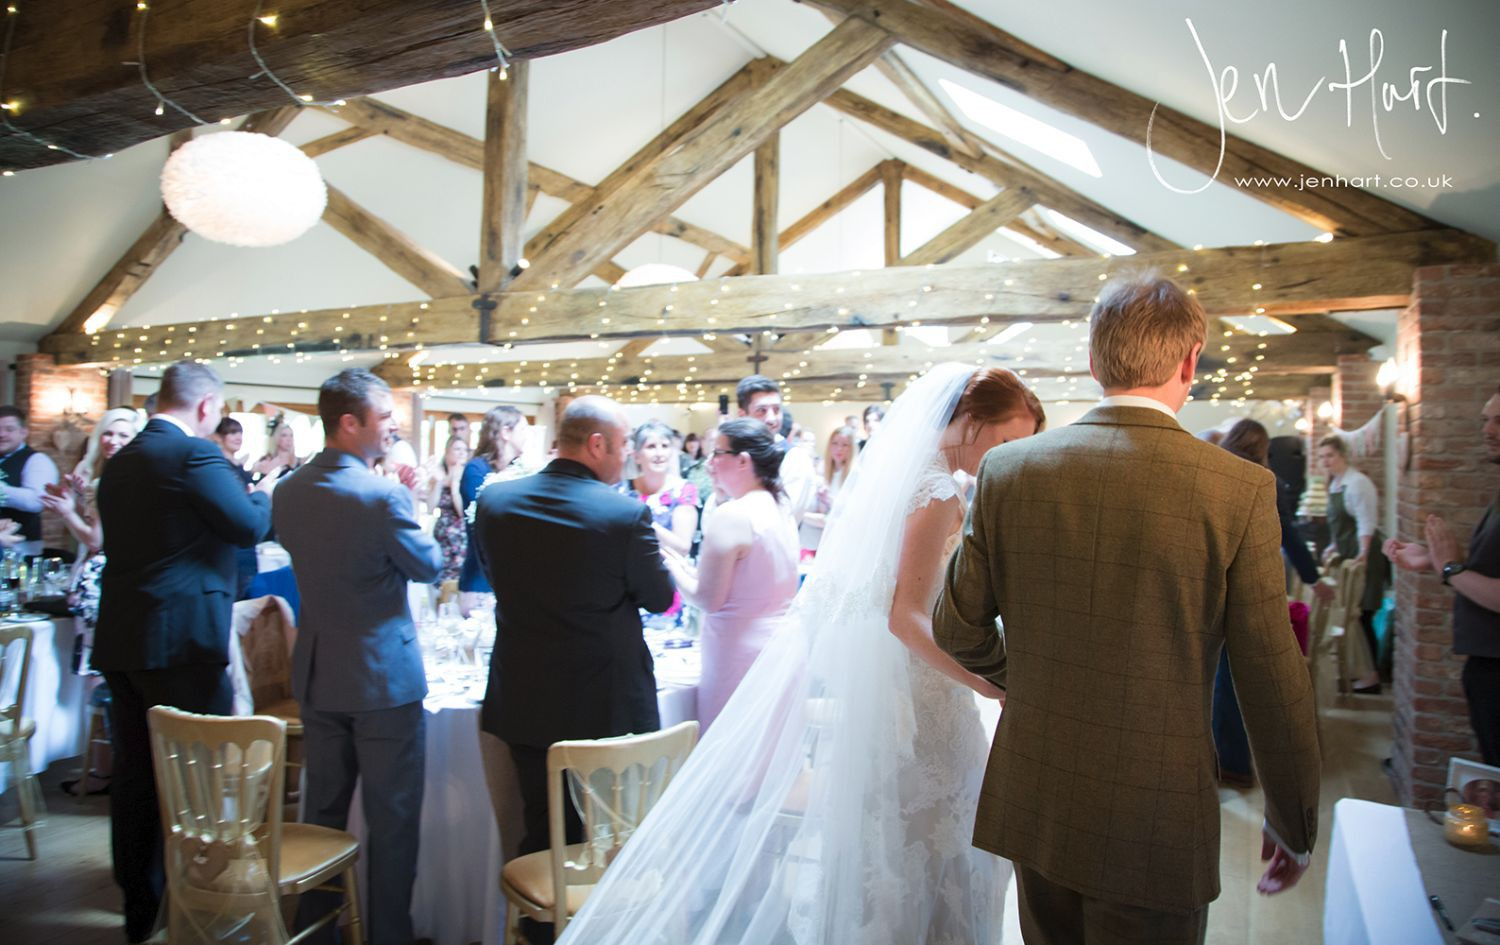 Photograph-Wedding-Whinstone-View_02May15_224